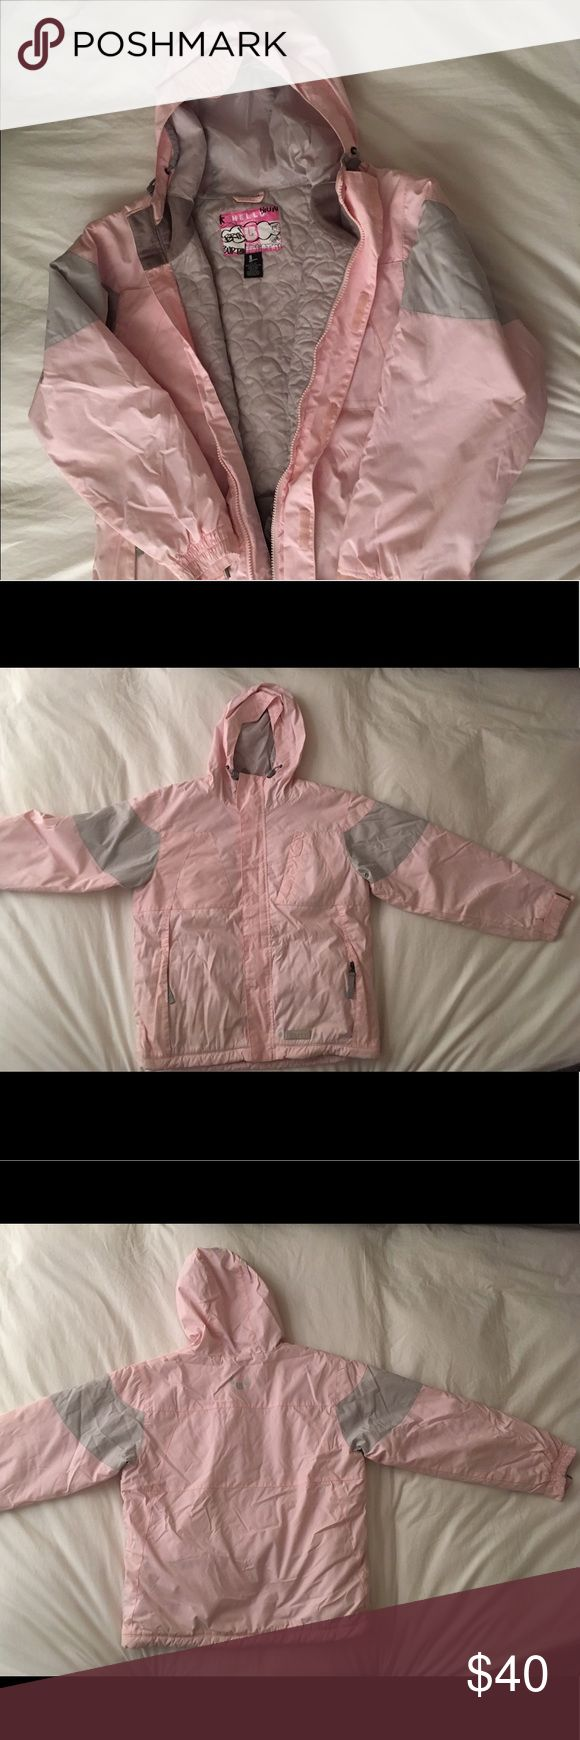 """Burton snowboarding jacket Kids size L. Warm pink/gray snowboarding jacket.  I am 5'2"""", 110lbs and it fits perfectly. Attached liner included with secret pocket. Pre-owned. No damages. Perfect for both winter and spring ski weather. Burton Other"""